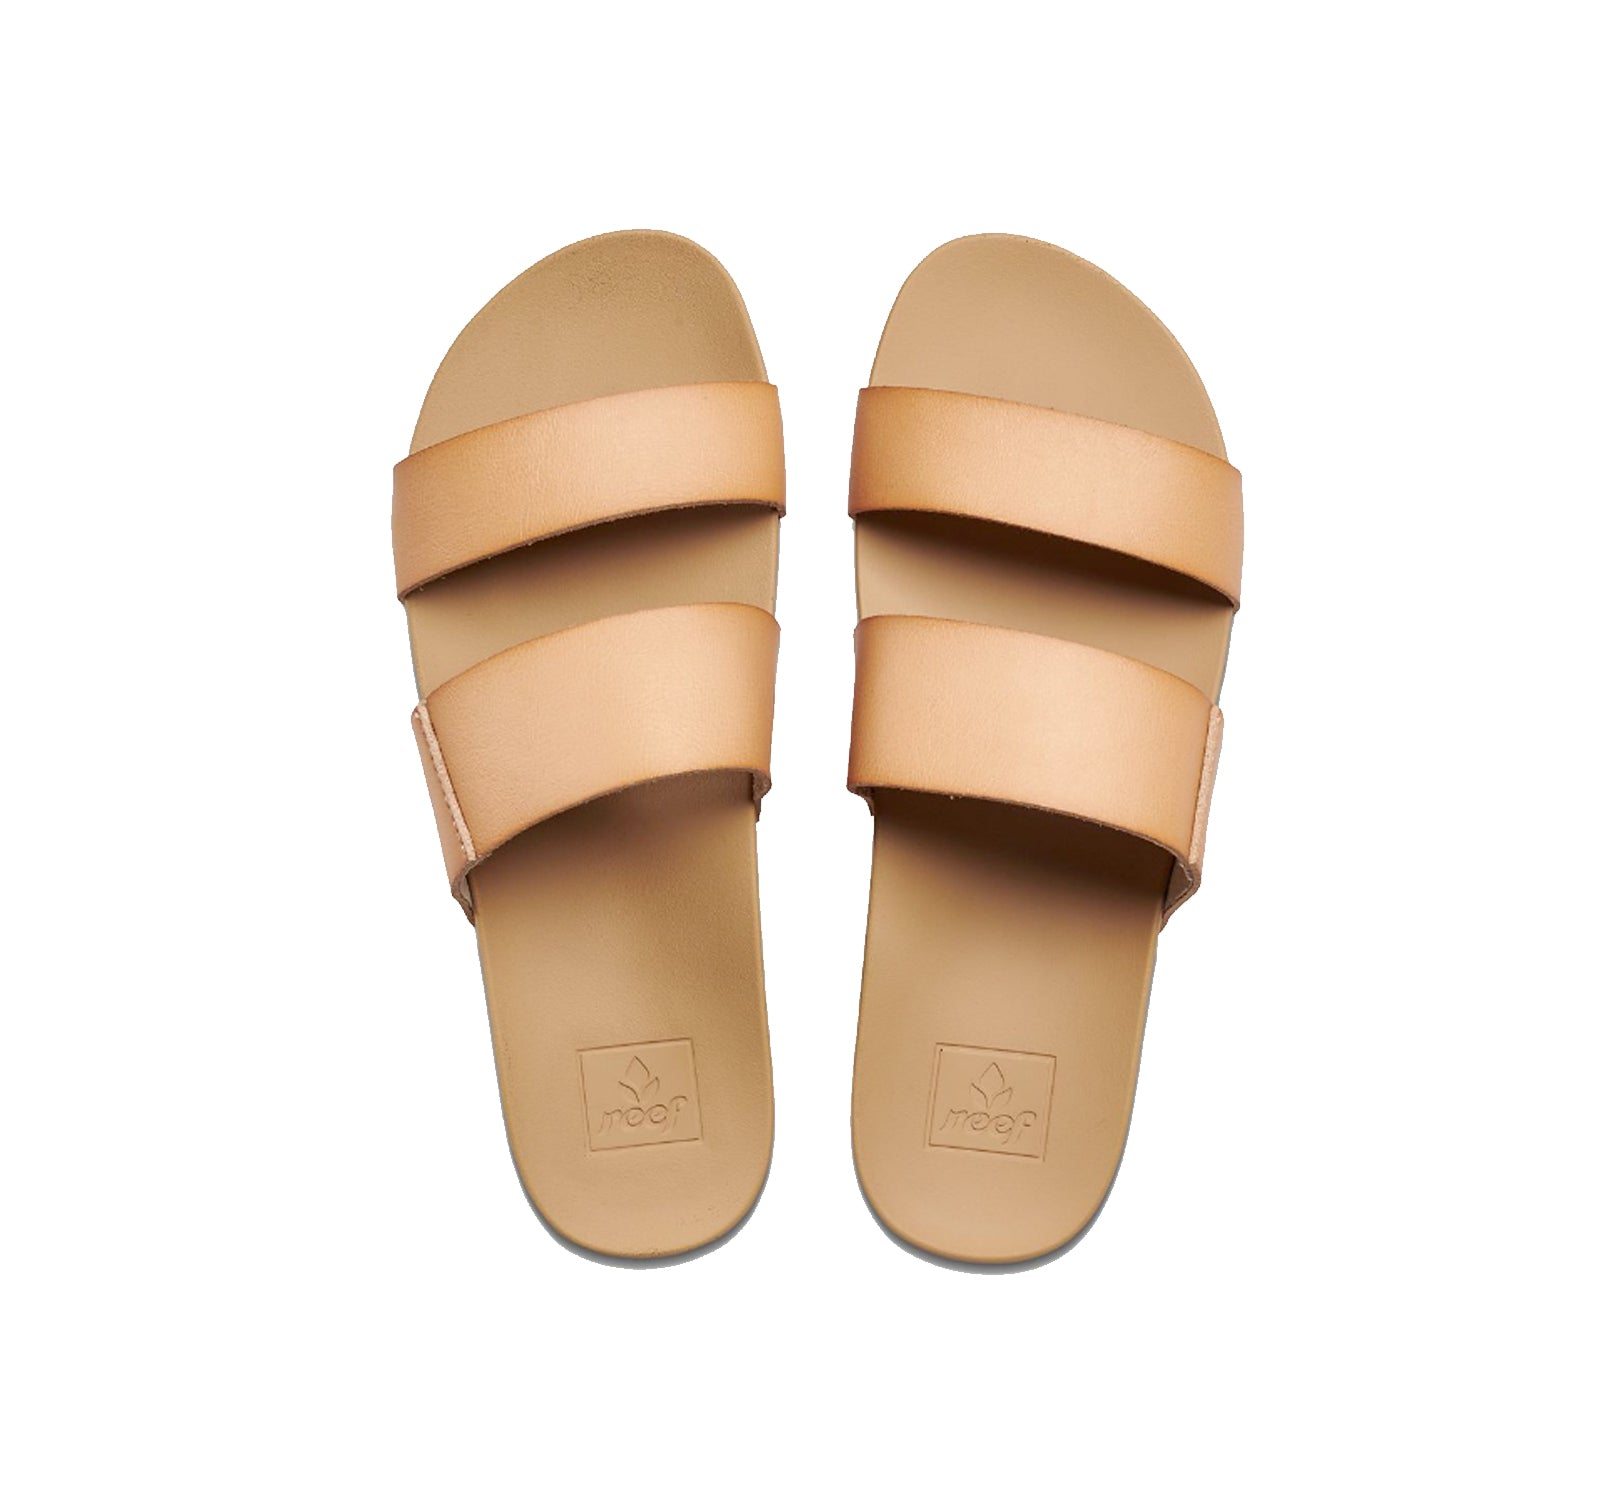 Reef Cushion Bounce Vista Women's Sandals Natural